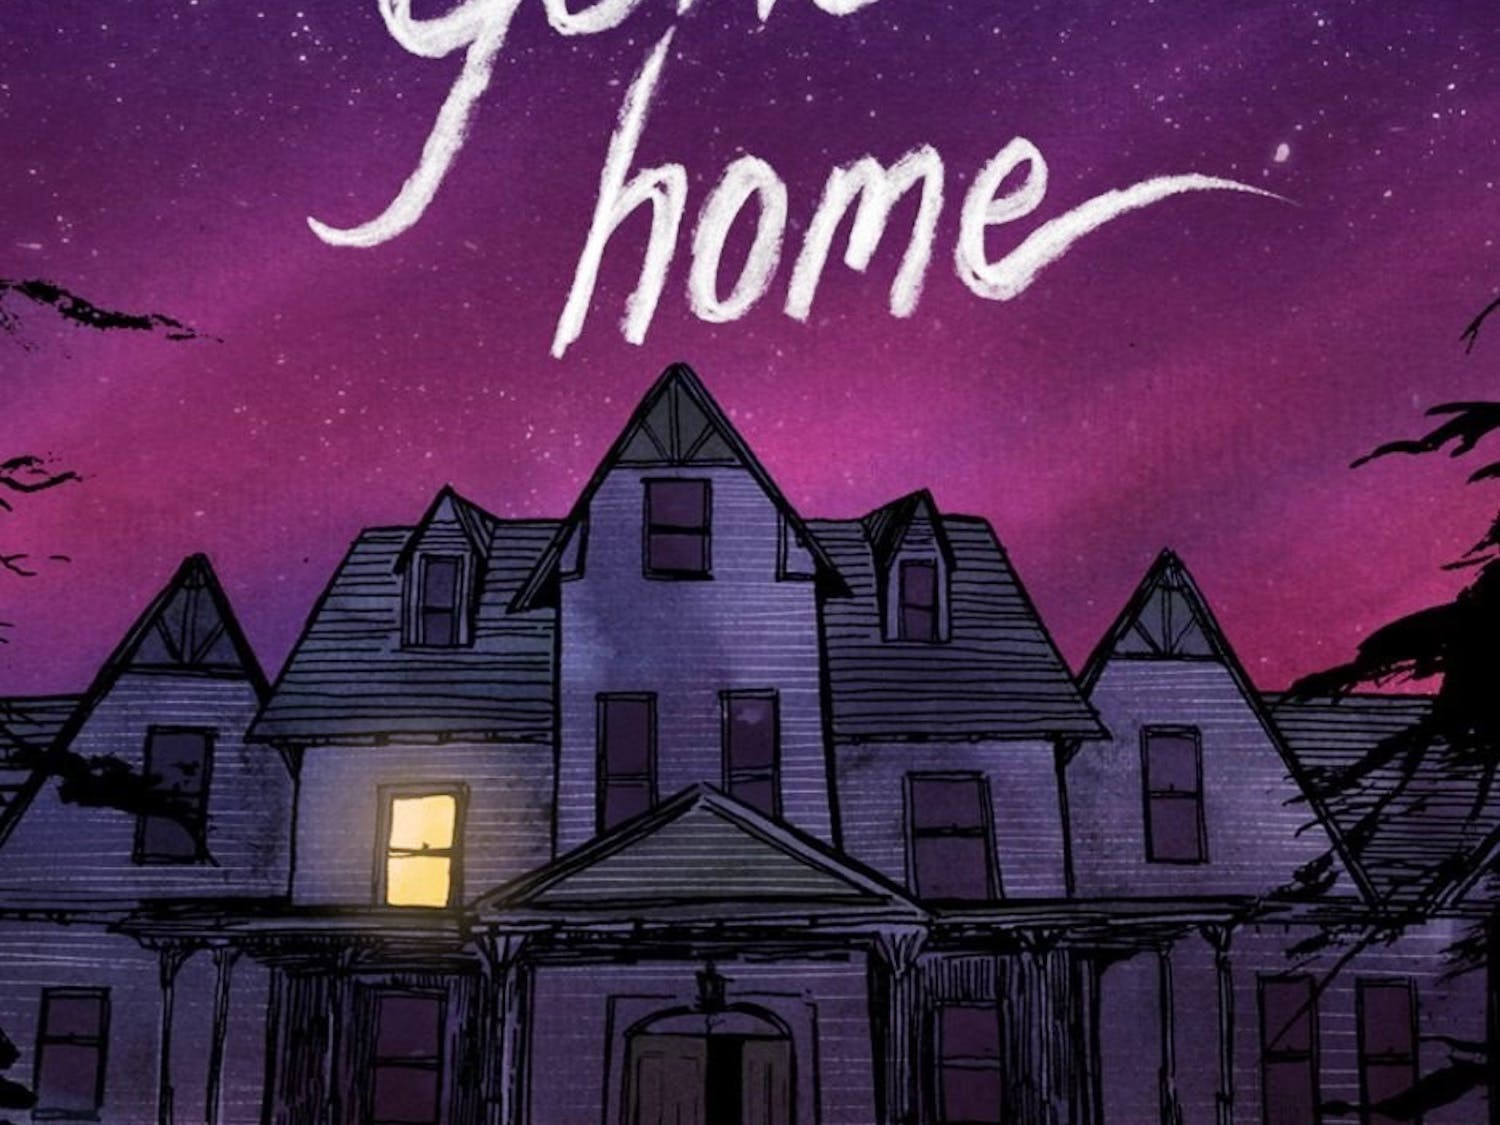 """Although the storytelling in """"Gone Home"""" is subtle, this makes the game more of a creepy, slow burn rather than a shocking and explicitly told story."""